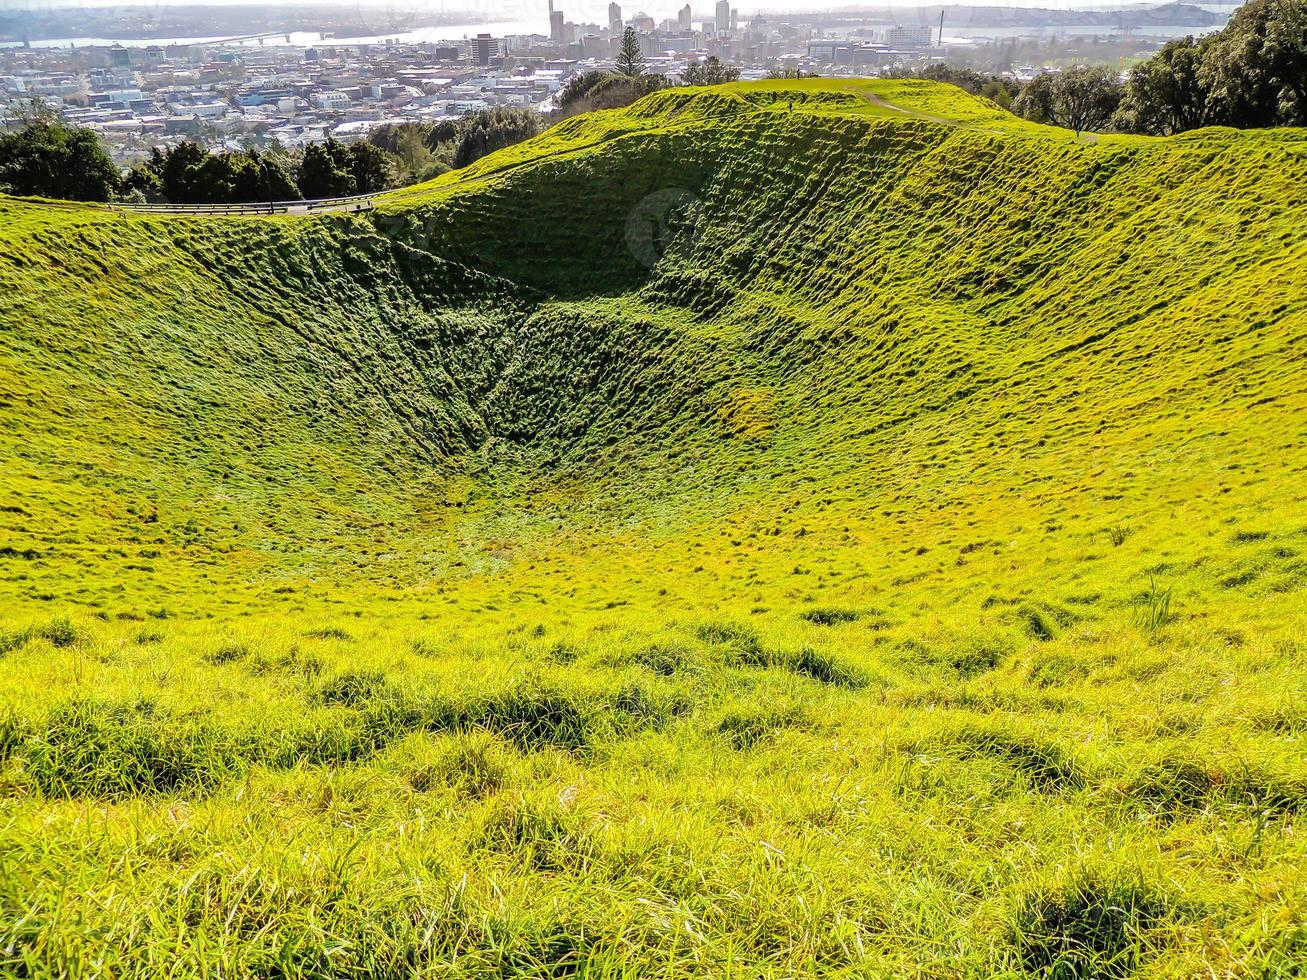 Grass covers the Mount Eden crater, Auckland, New Zealand photo